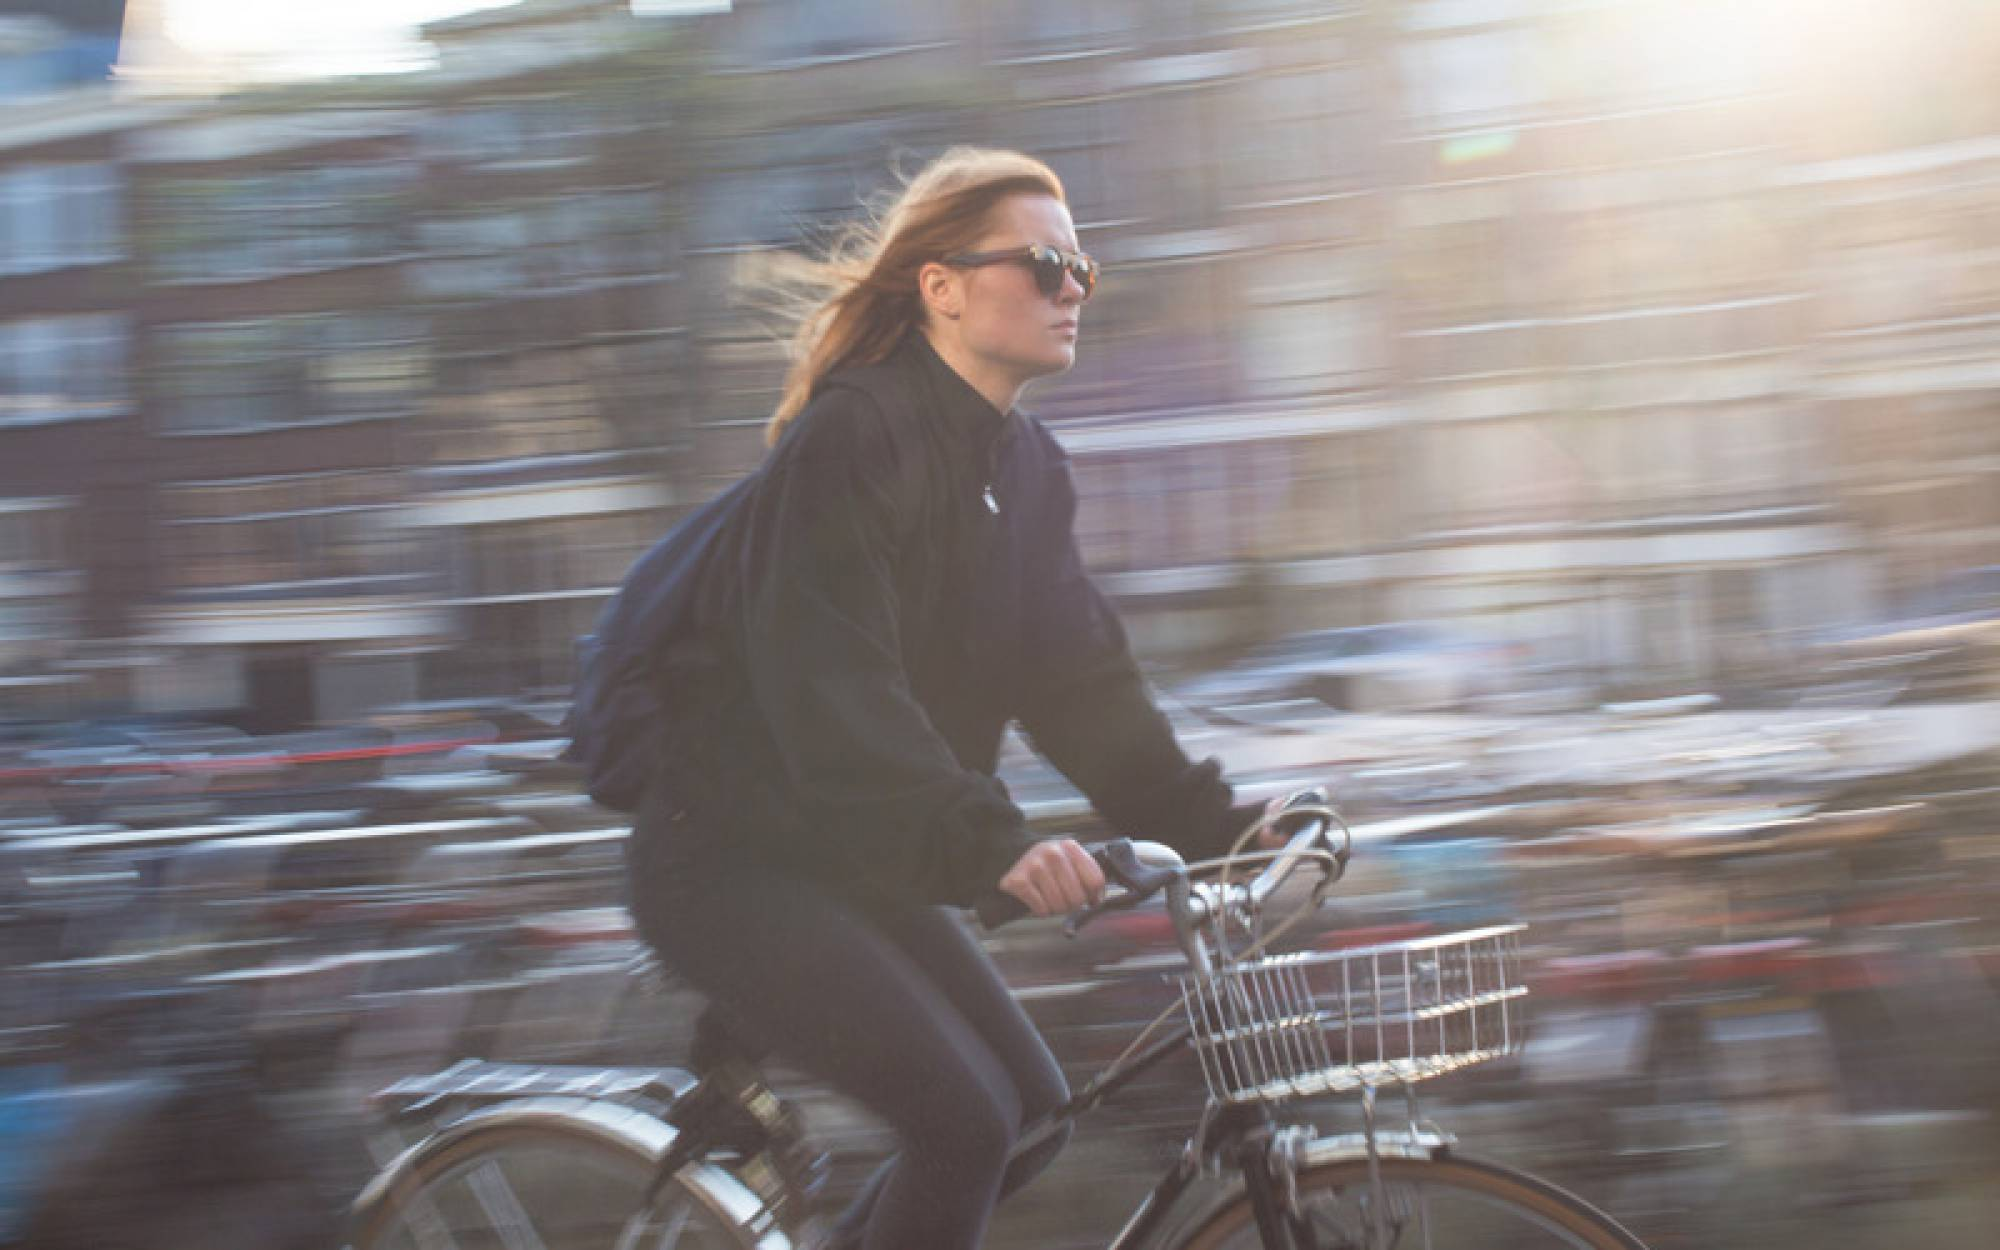 Canva - Woman Riding Bicycle